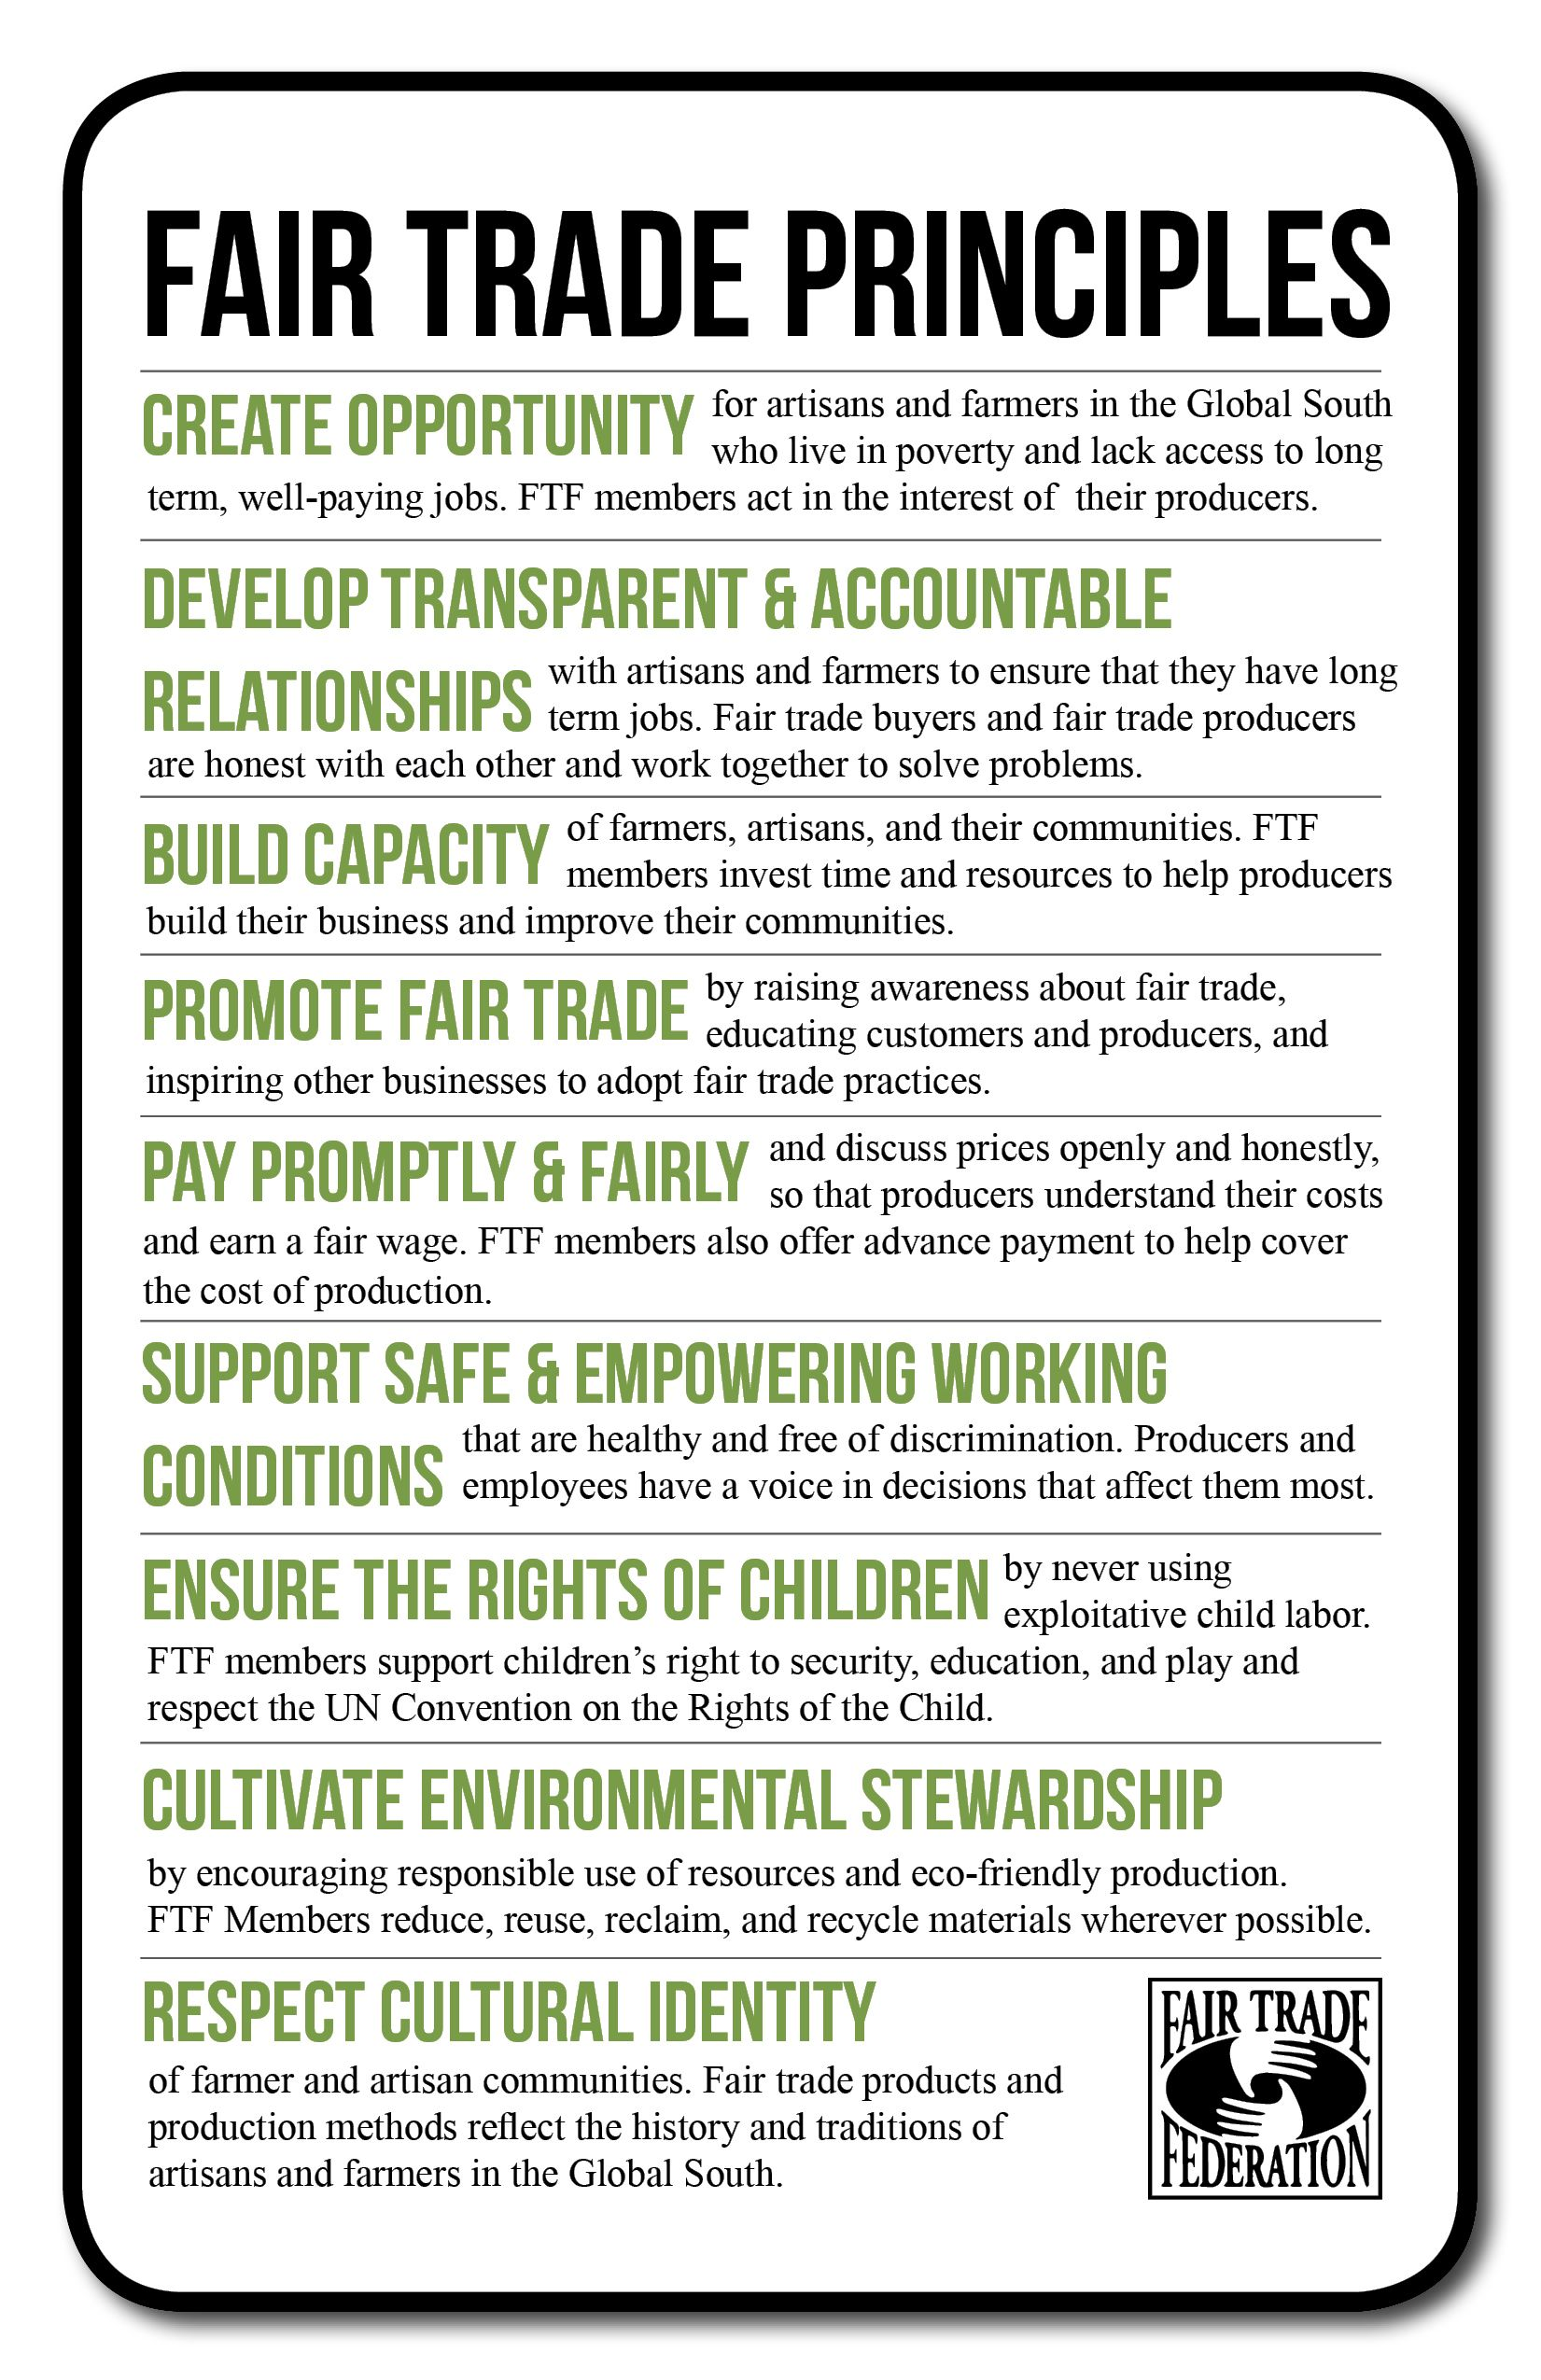 The 9 Fair Trade Federation Principles